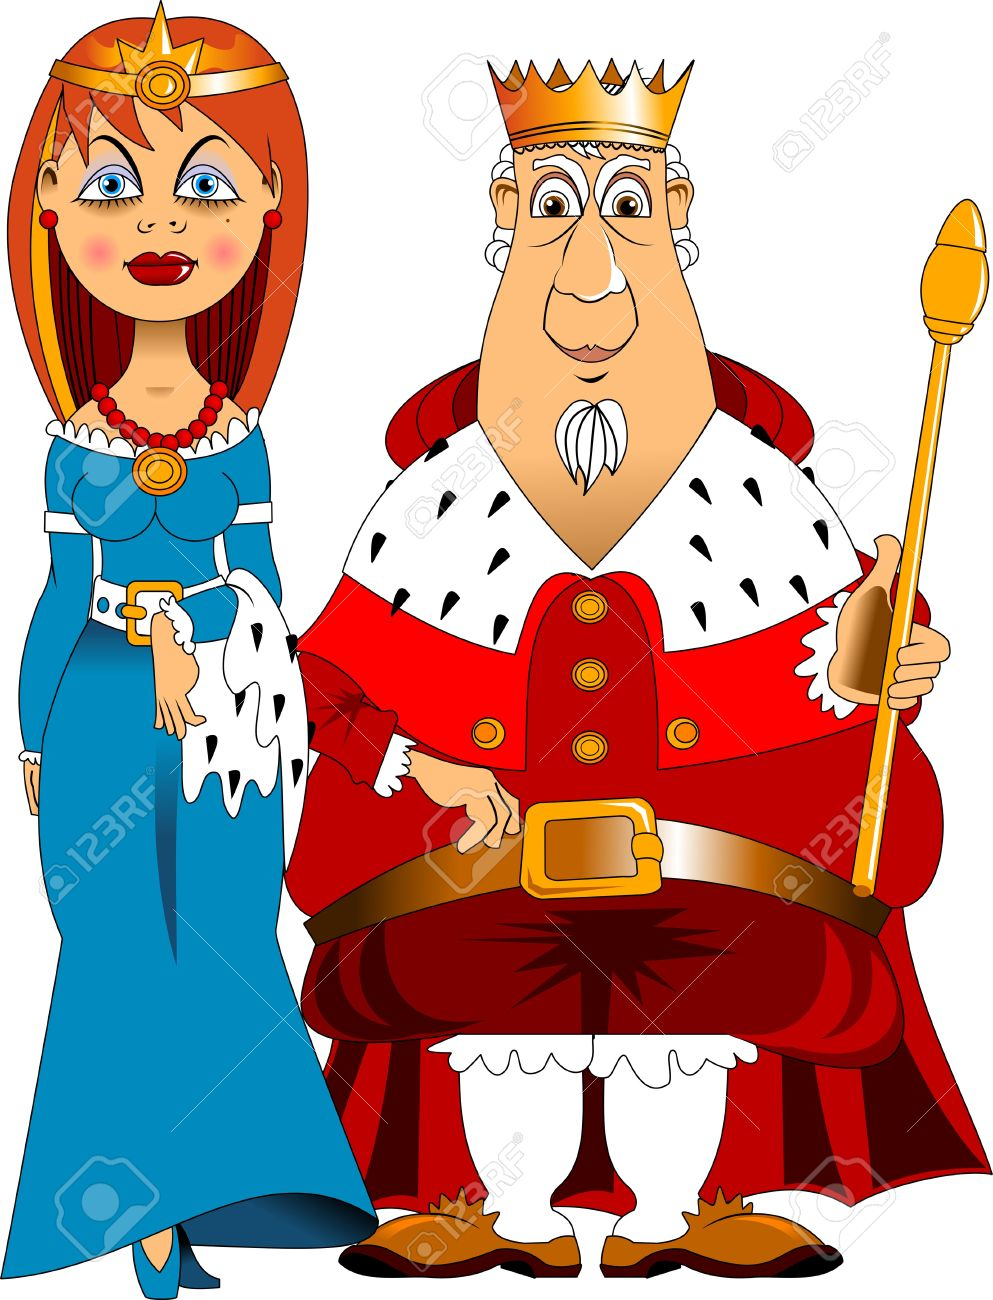 Illustration Of A Man And Woman Dressed As A King And Queen Royalty